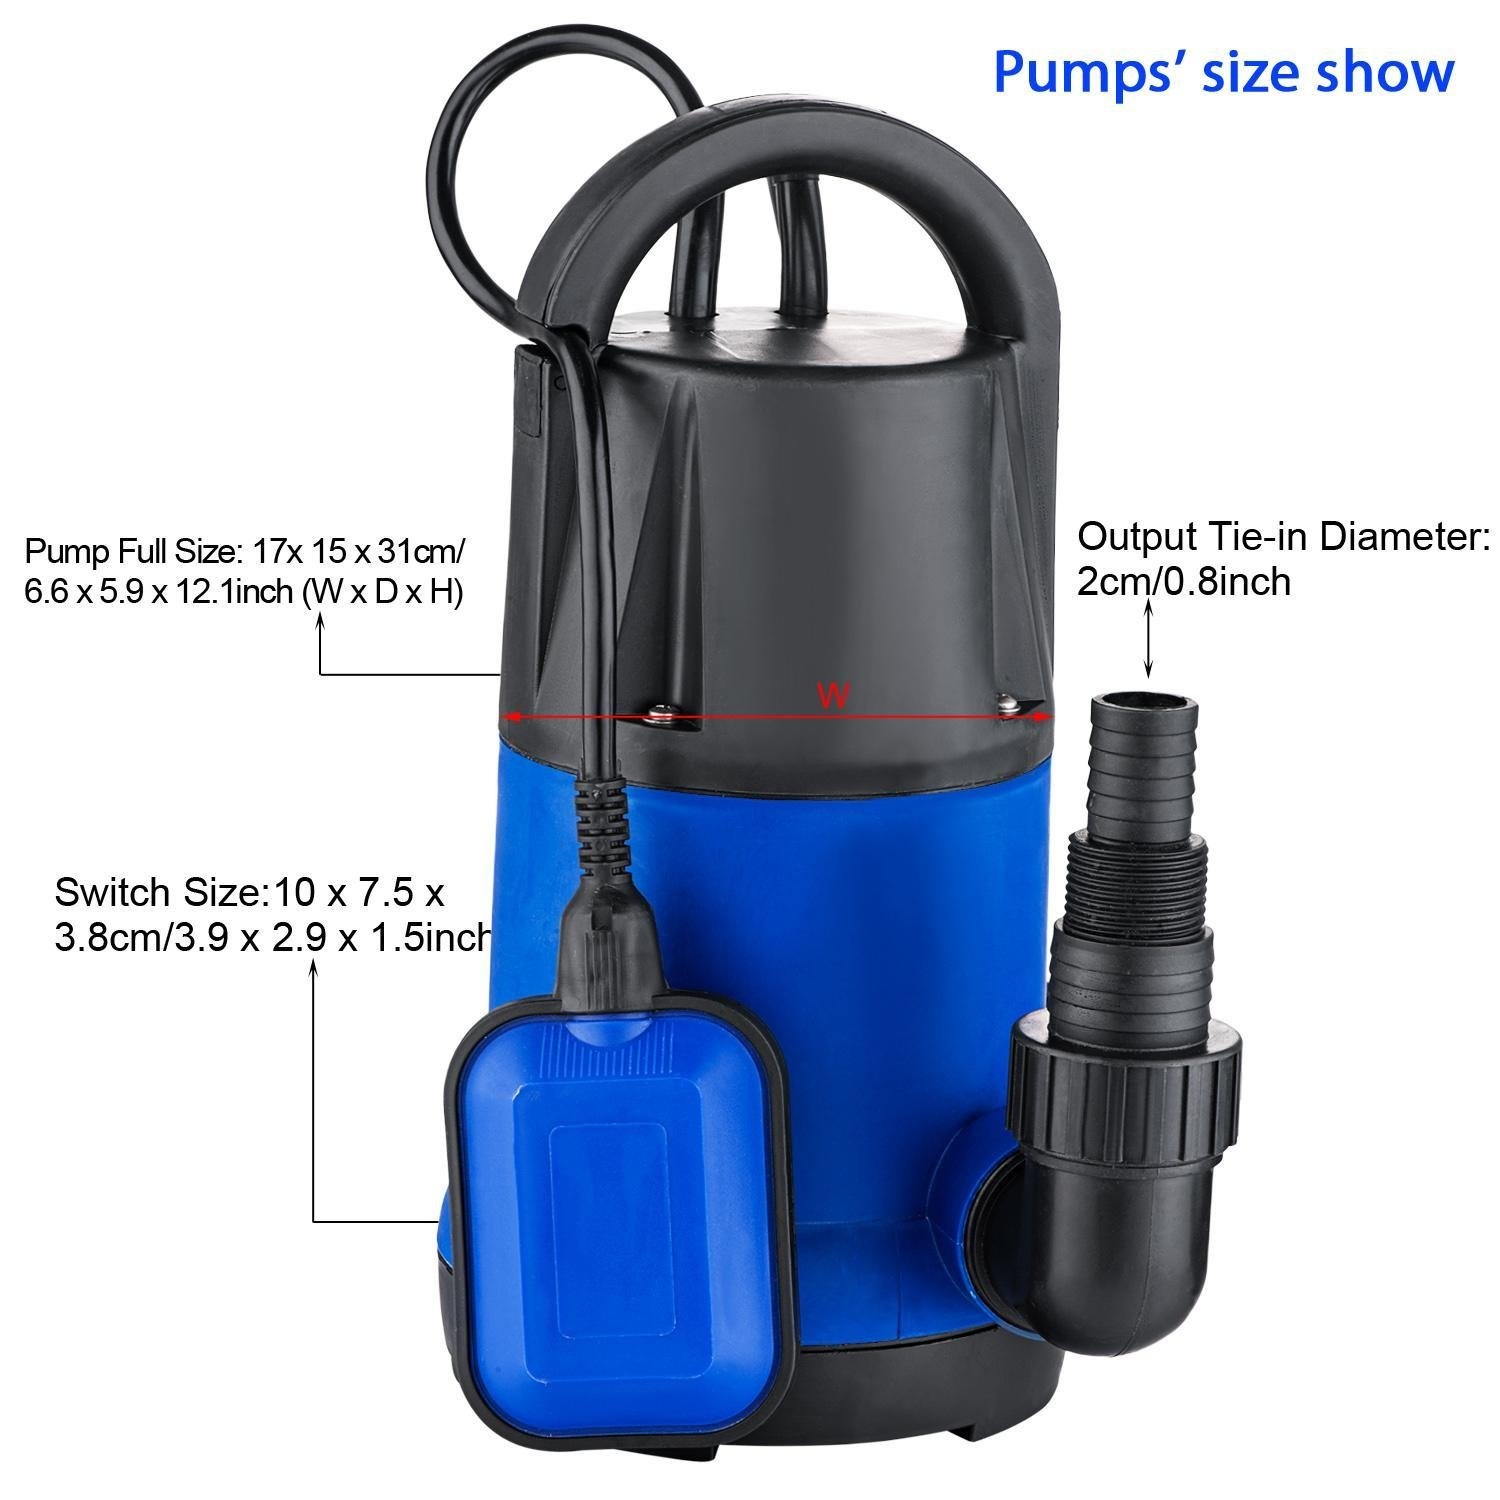 Hindom 3400GPH 1100W Automatic Submersible Water Pump for Dirty Water Transfer, Swimming Pool, Pond (US STOCK)